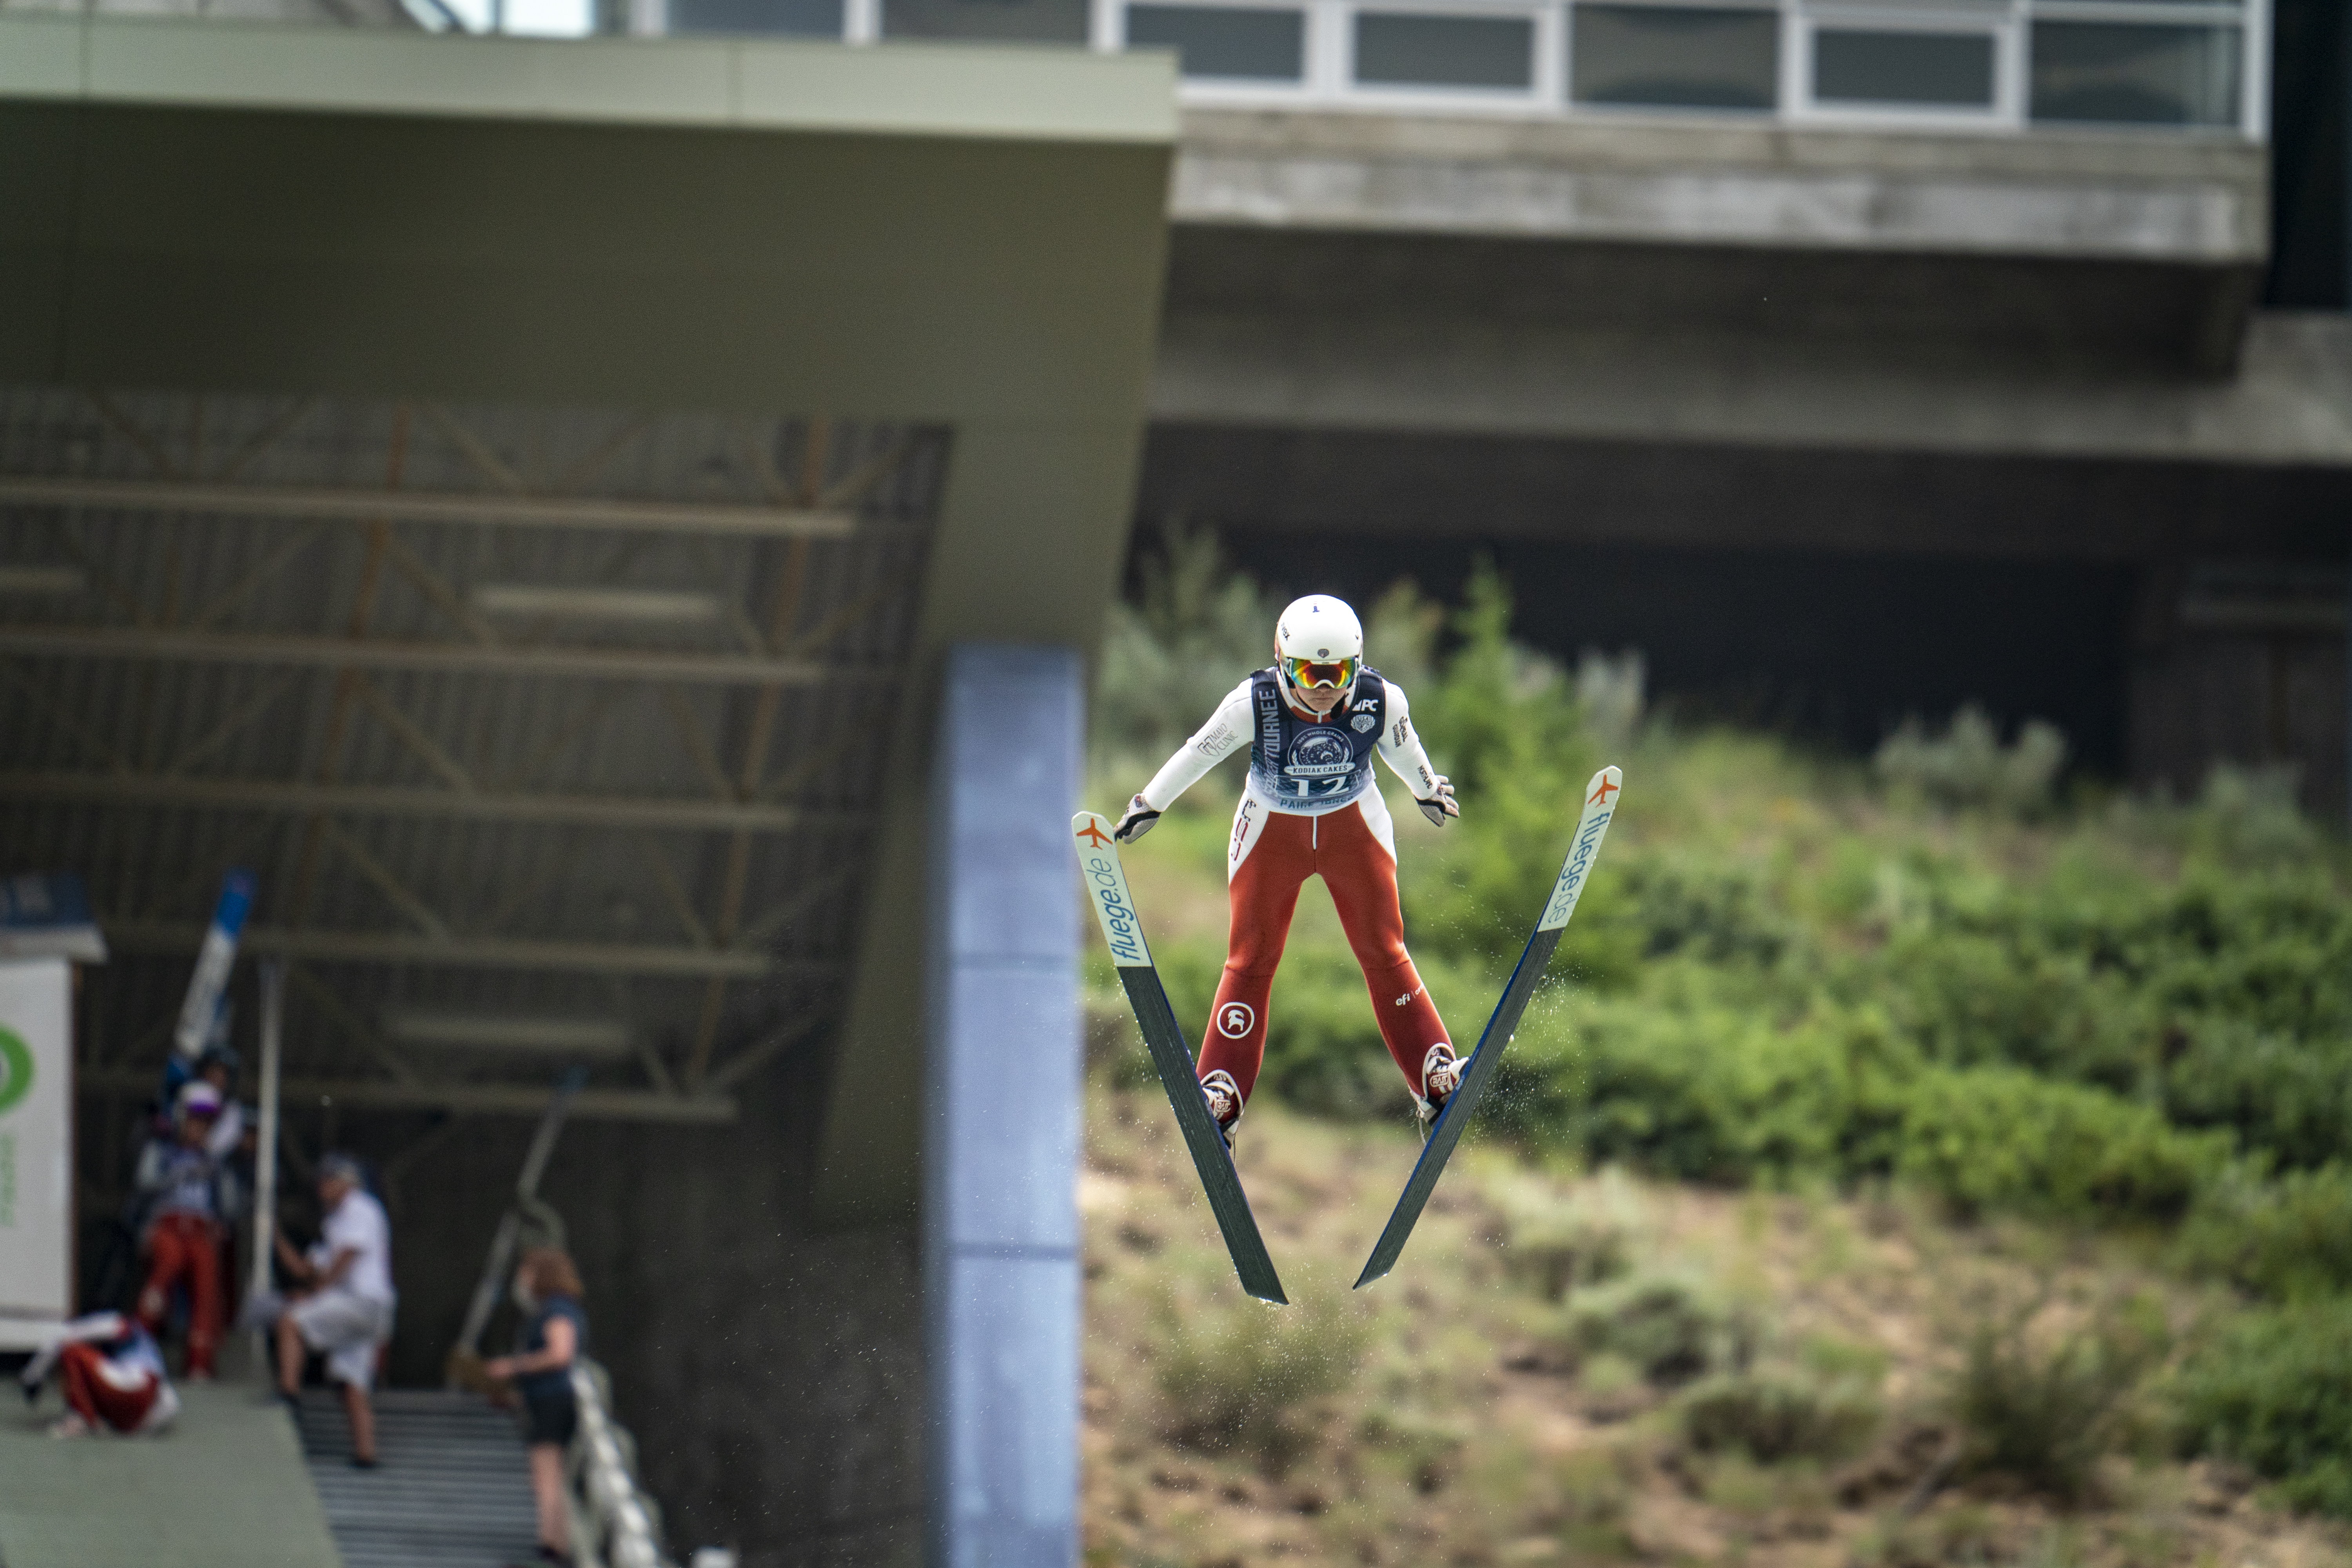 Paige Jones, already youngest member of U.S. ski jumping team, has eyes on 2020 Youth Winter Games